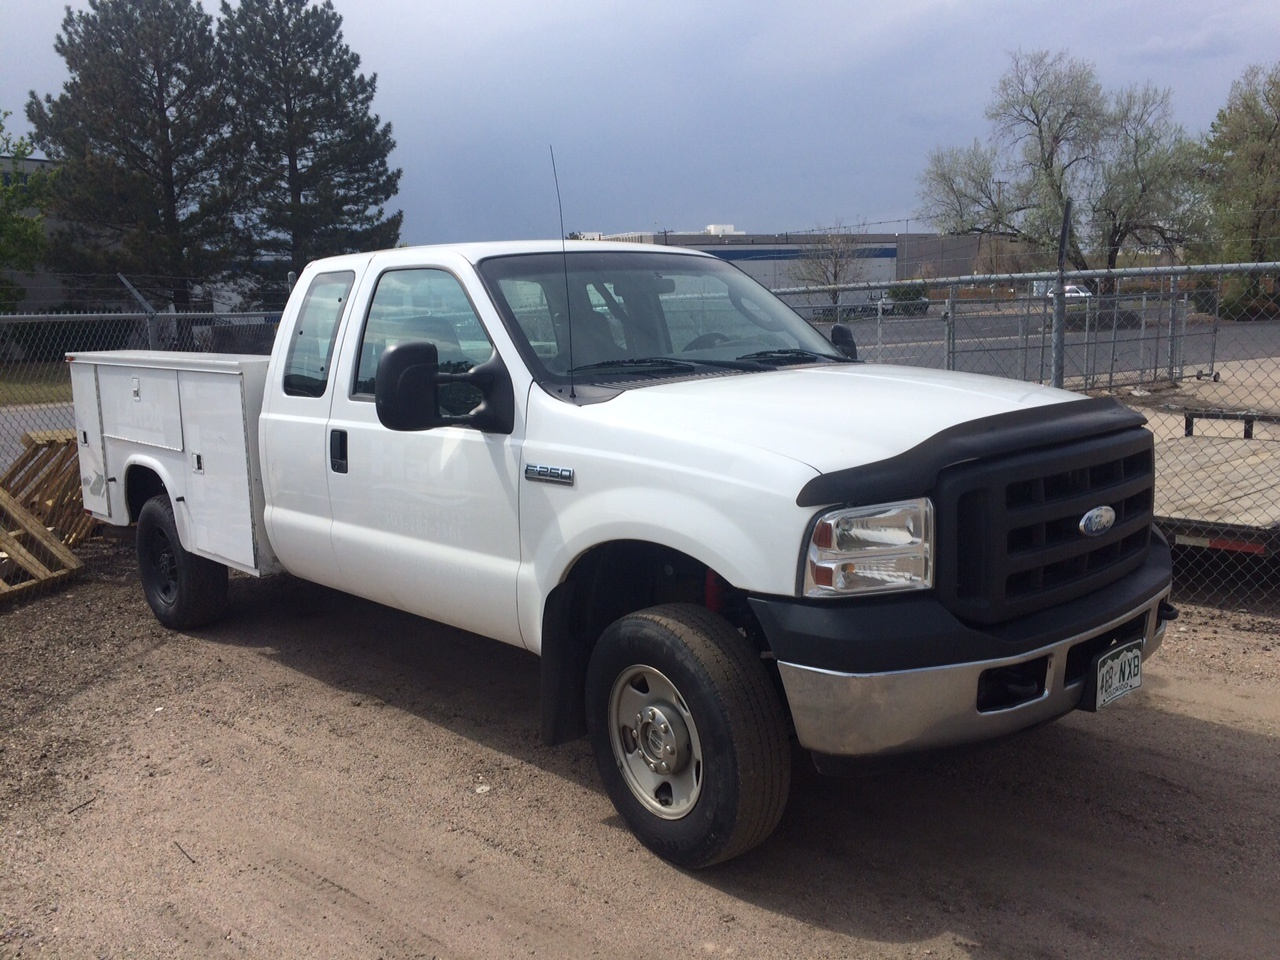 Who Owns King Ranch >> 2007 Ford F-250 Super Duty - Pictures - CarGurus